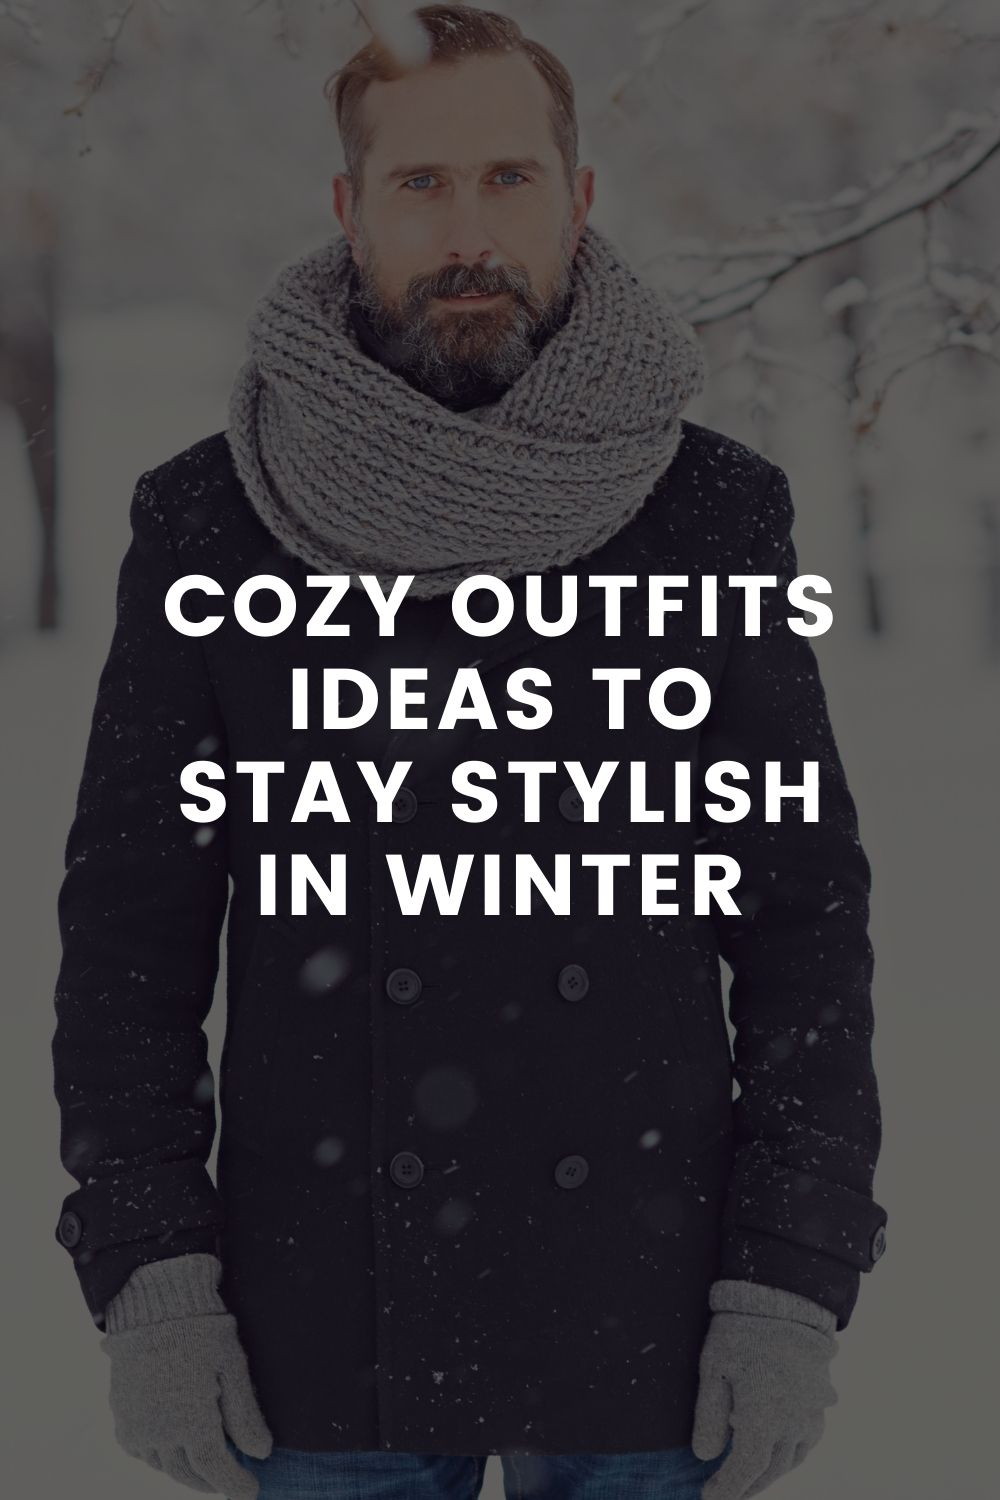 Cozy Outfits Ideas To Stay Stylish In Winter